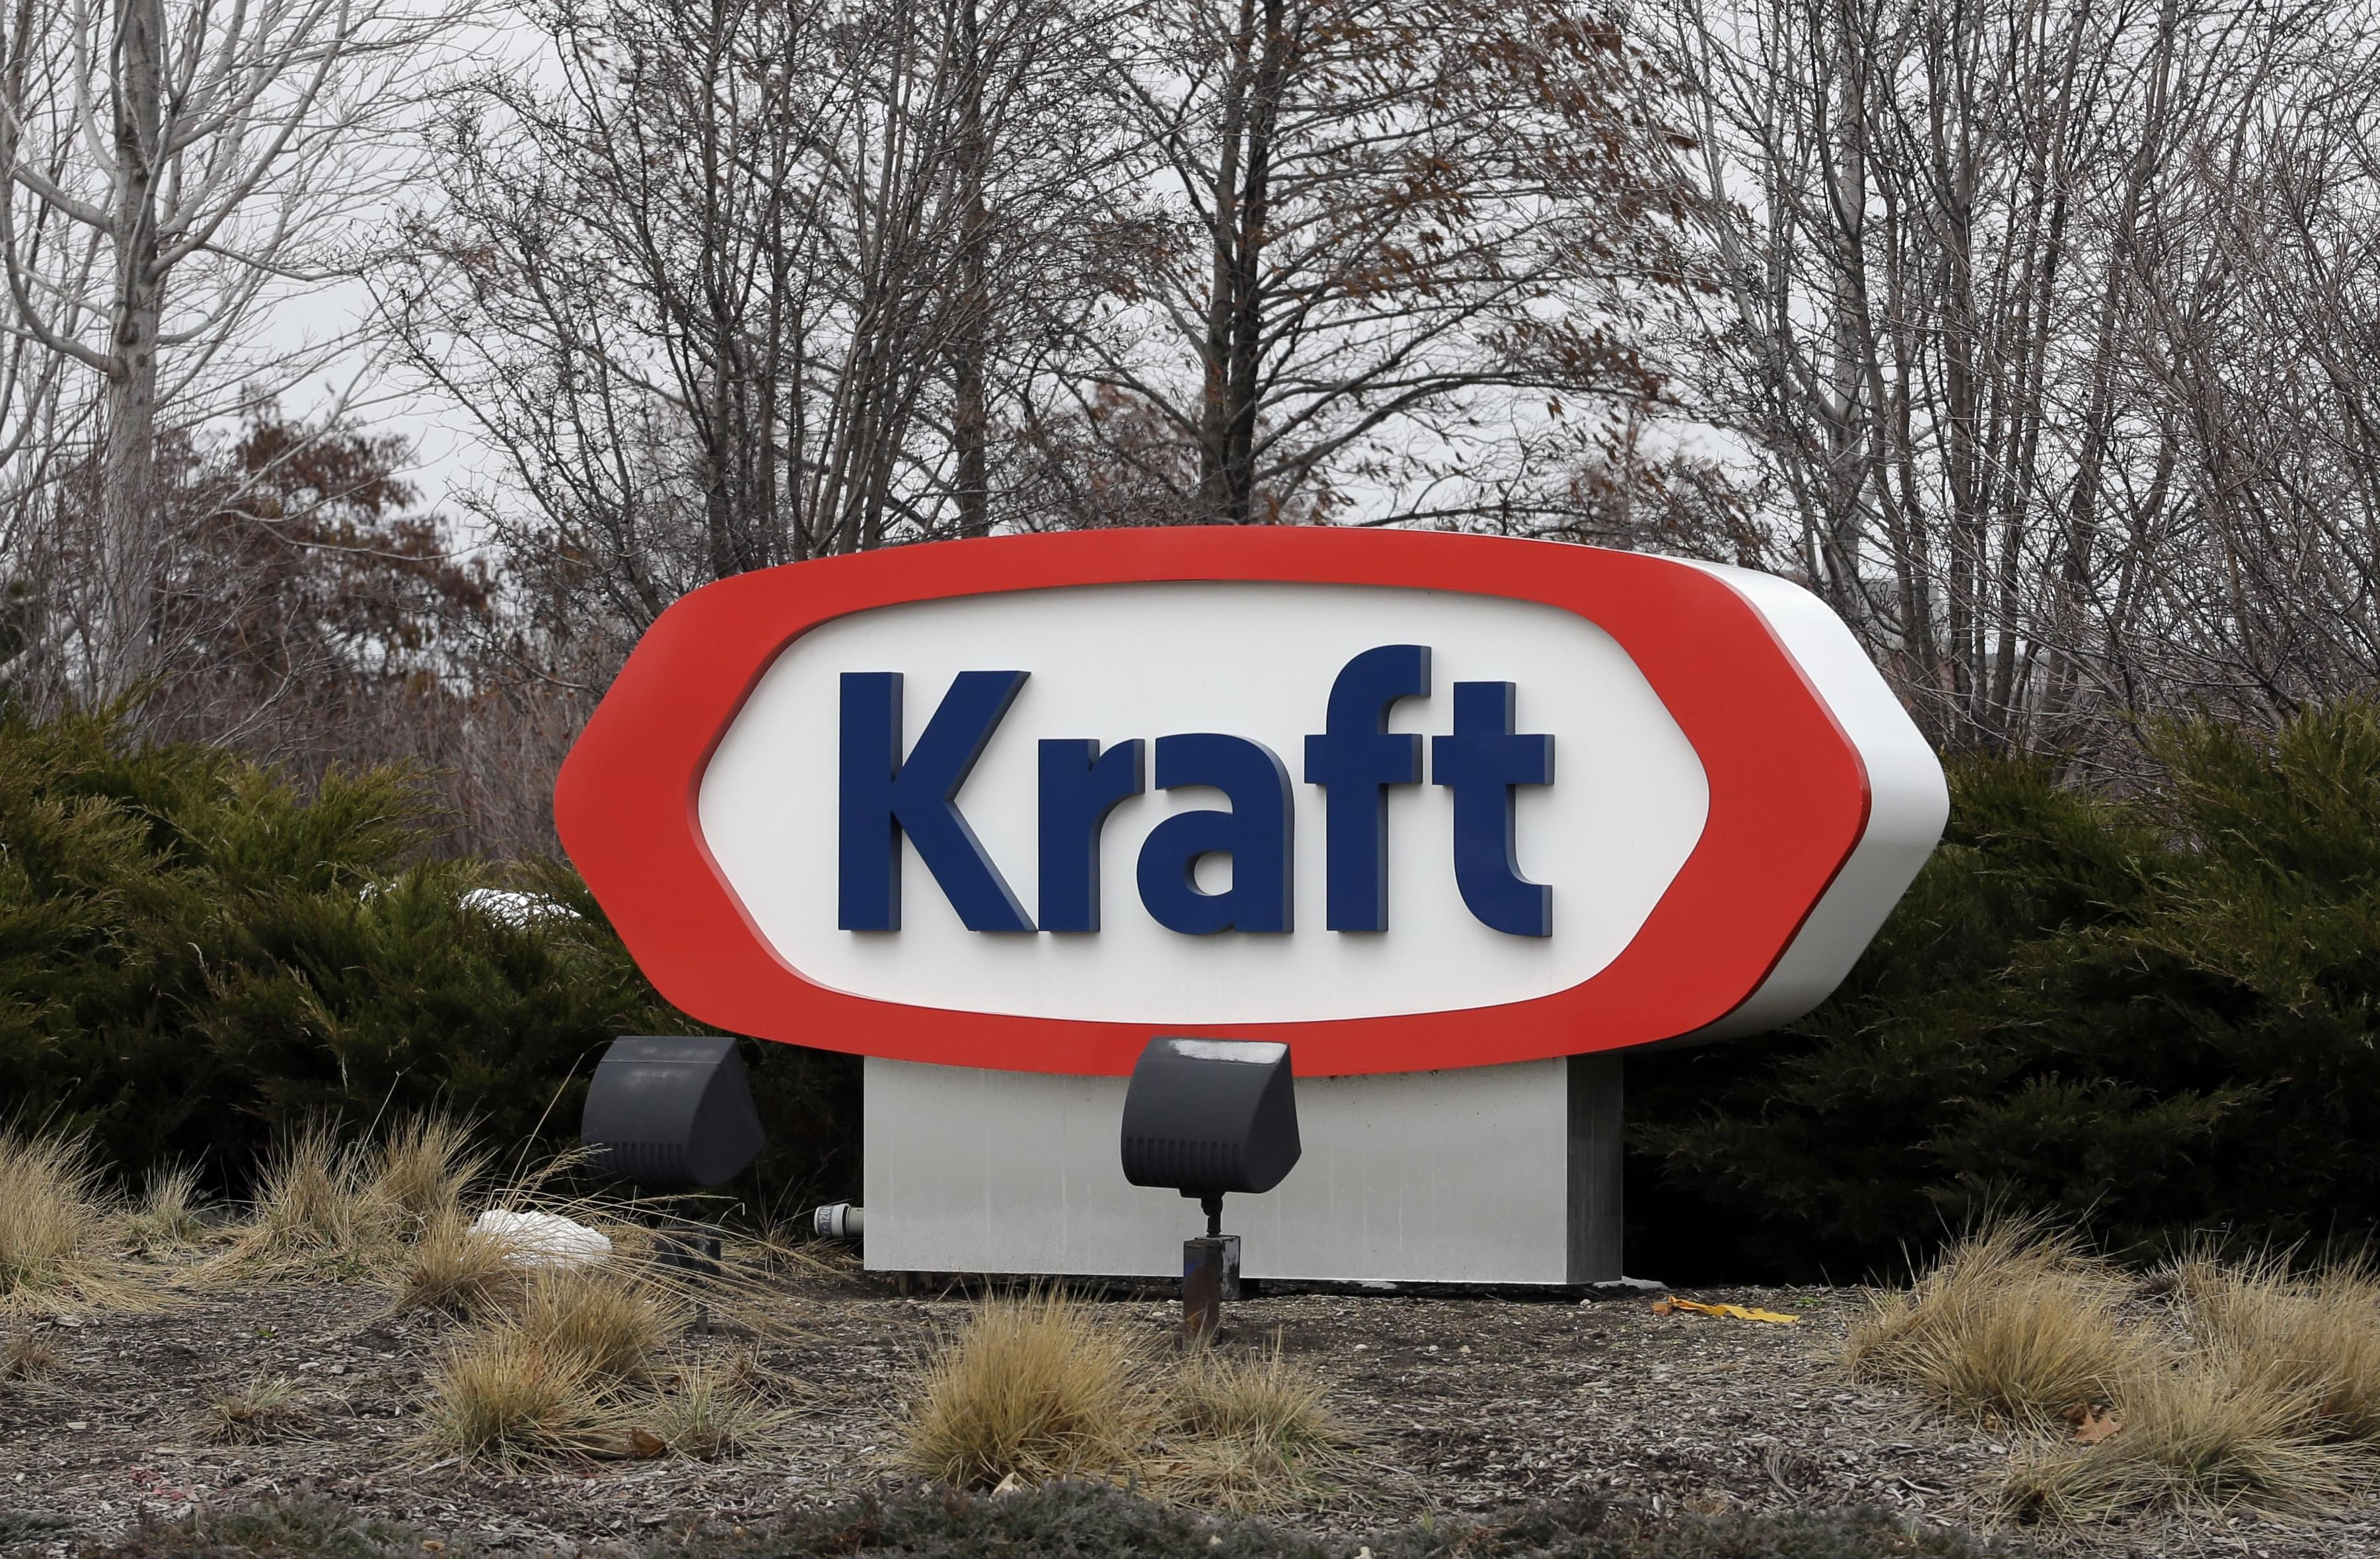 Kraft logo appears outside its headquarters in Northfield, Illinois Wednesday.